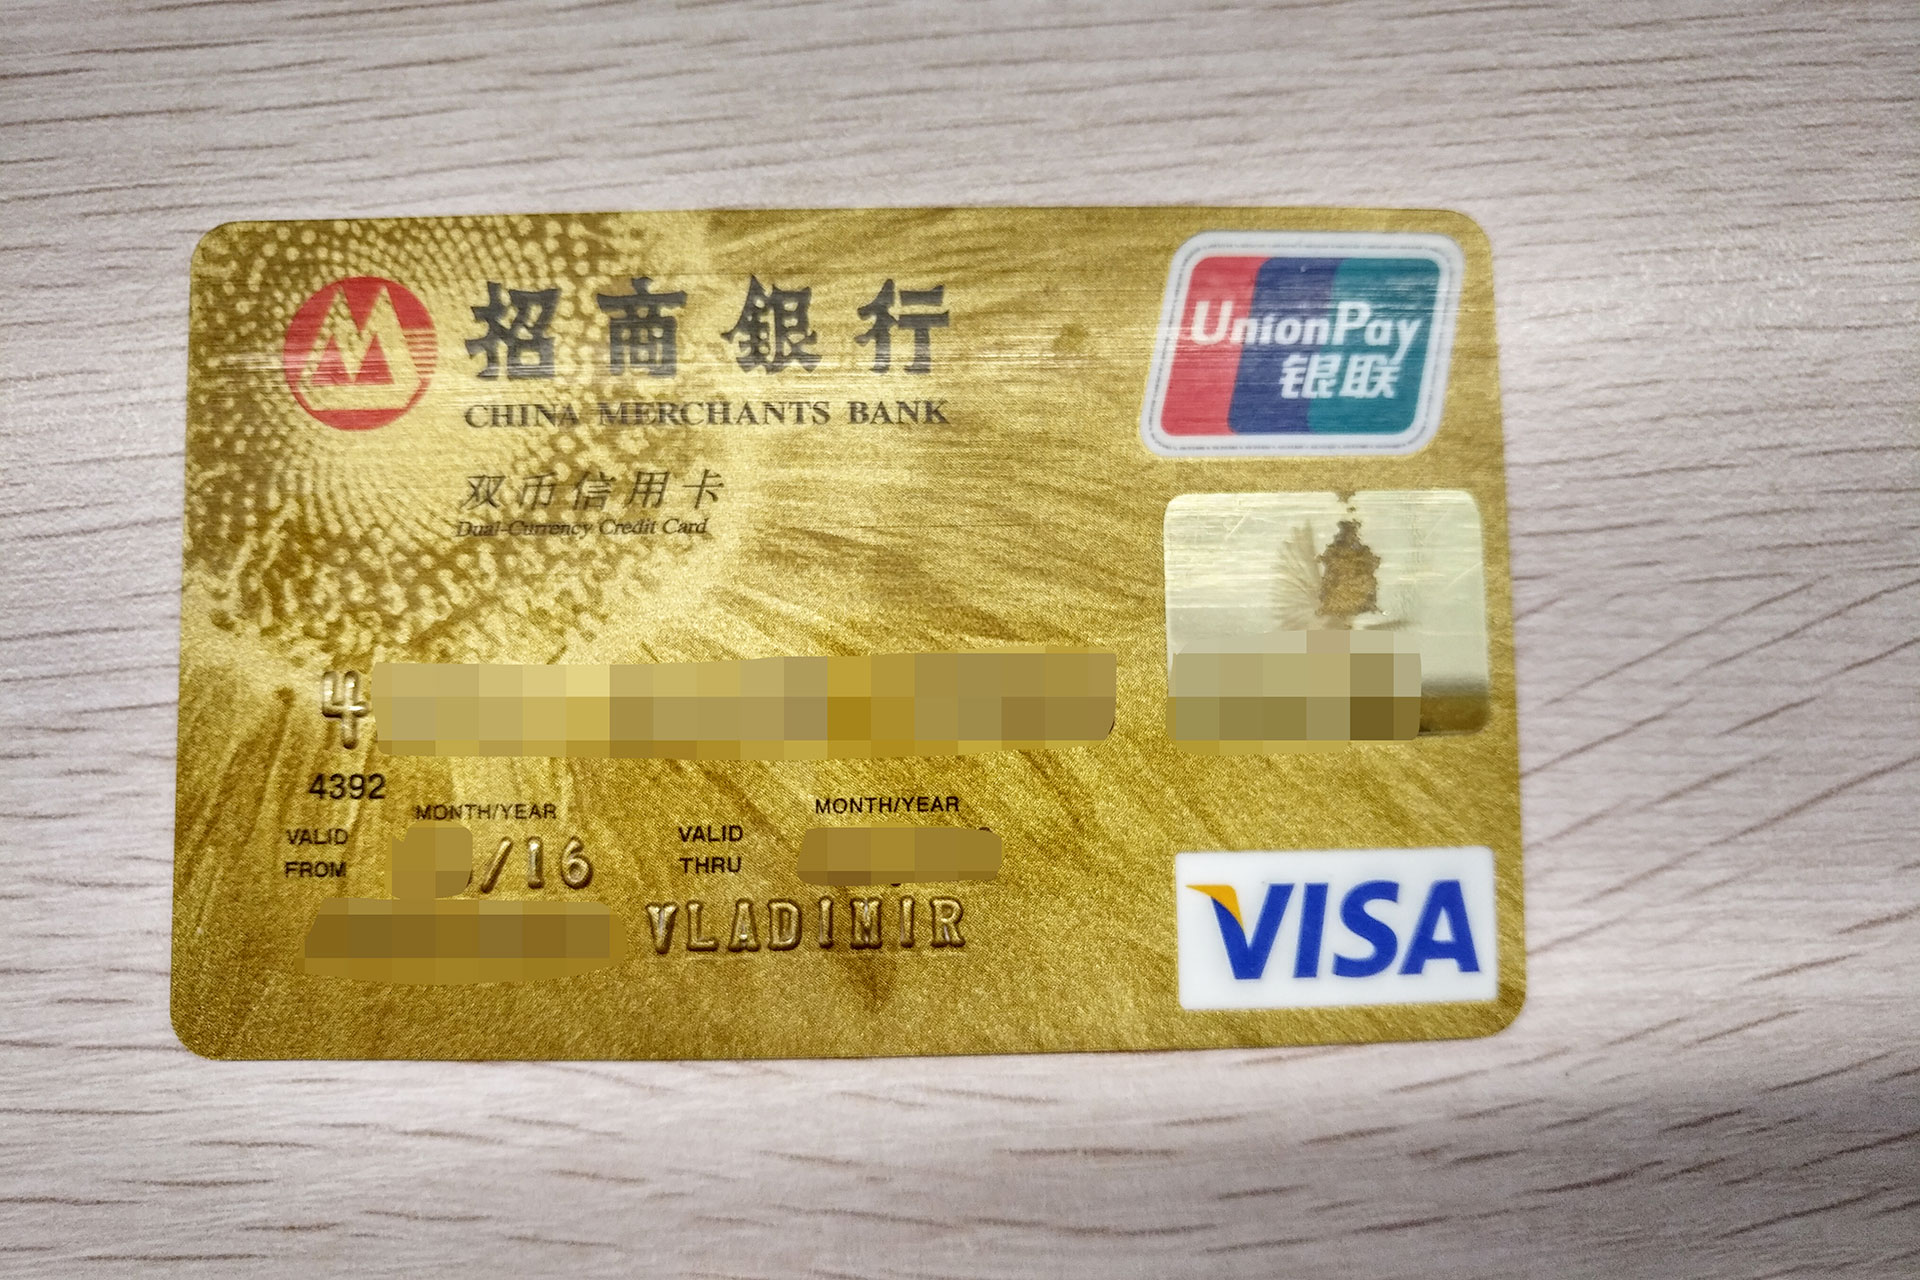 Credit card Visa+UnionPay in China Merchants Bank